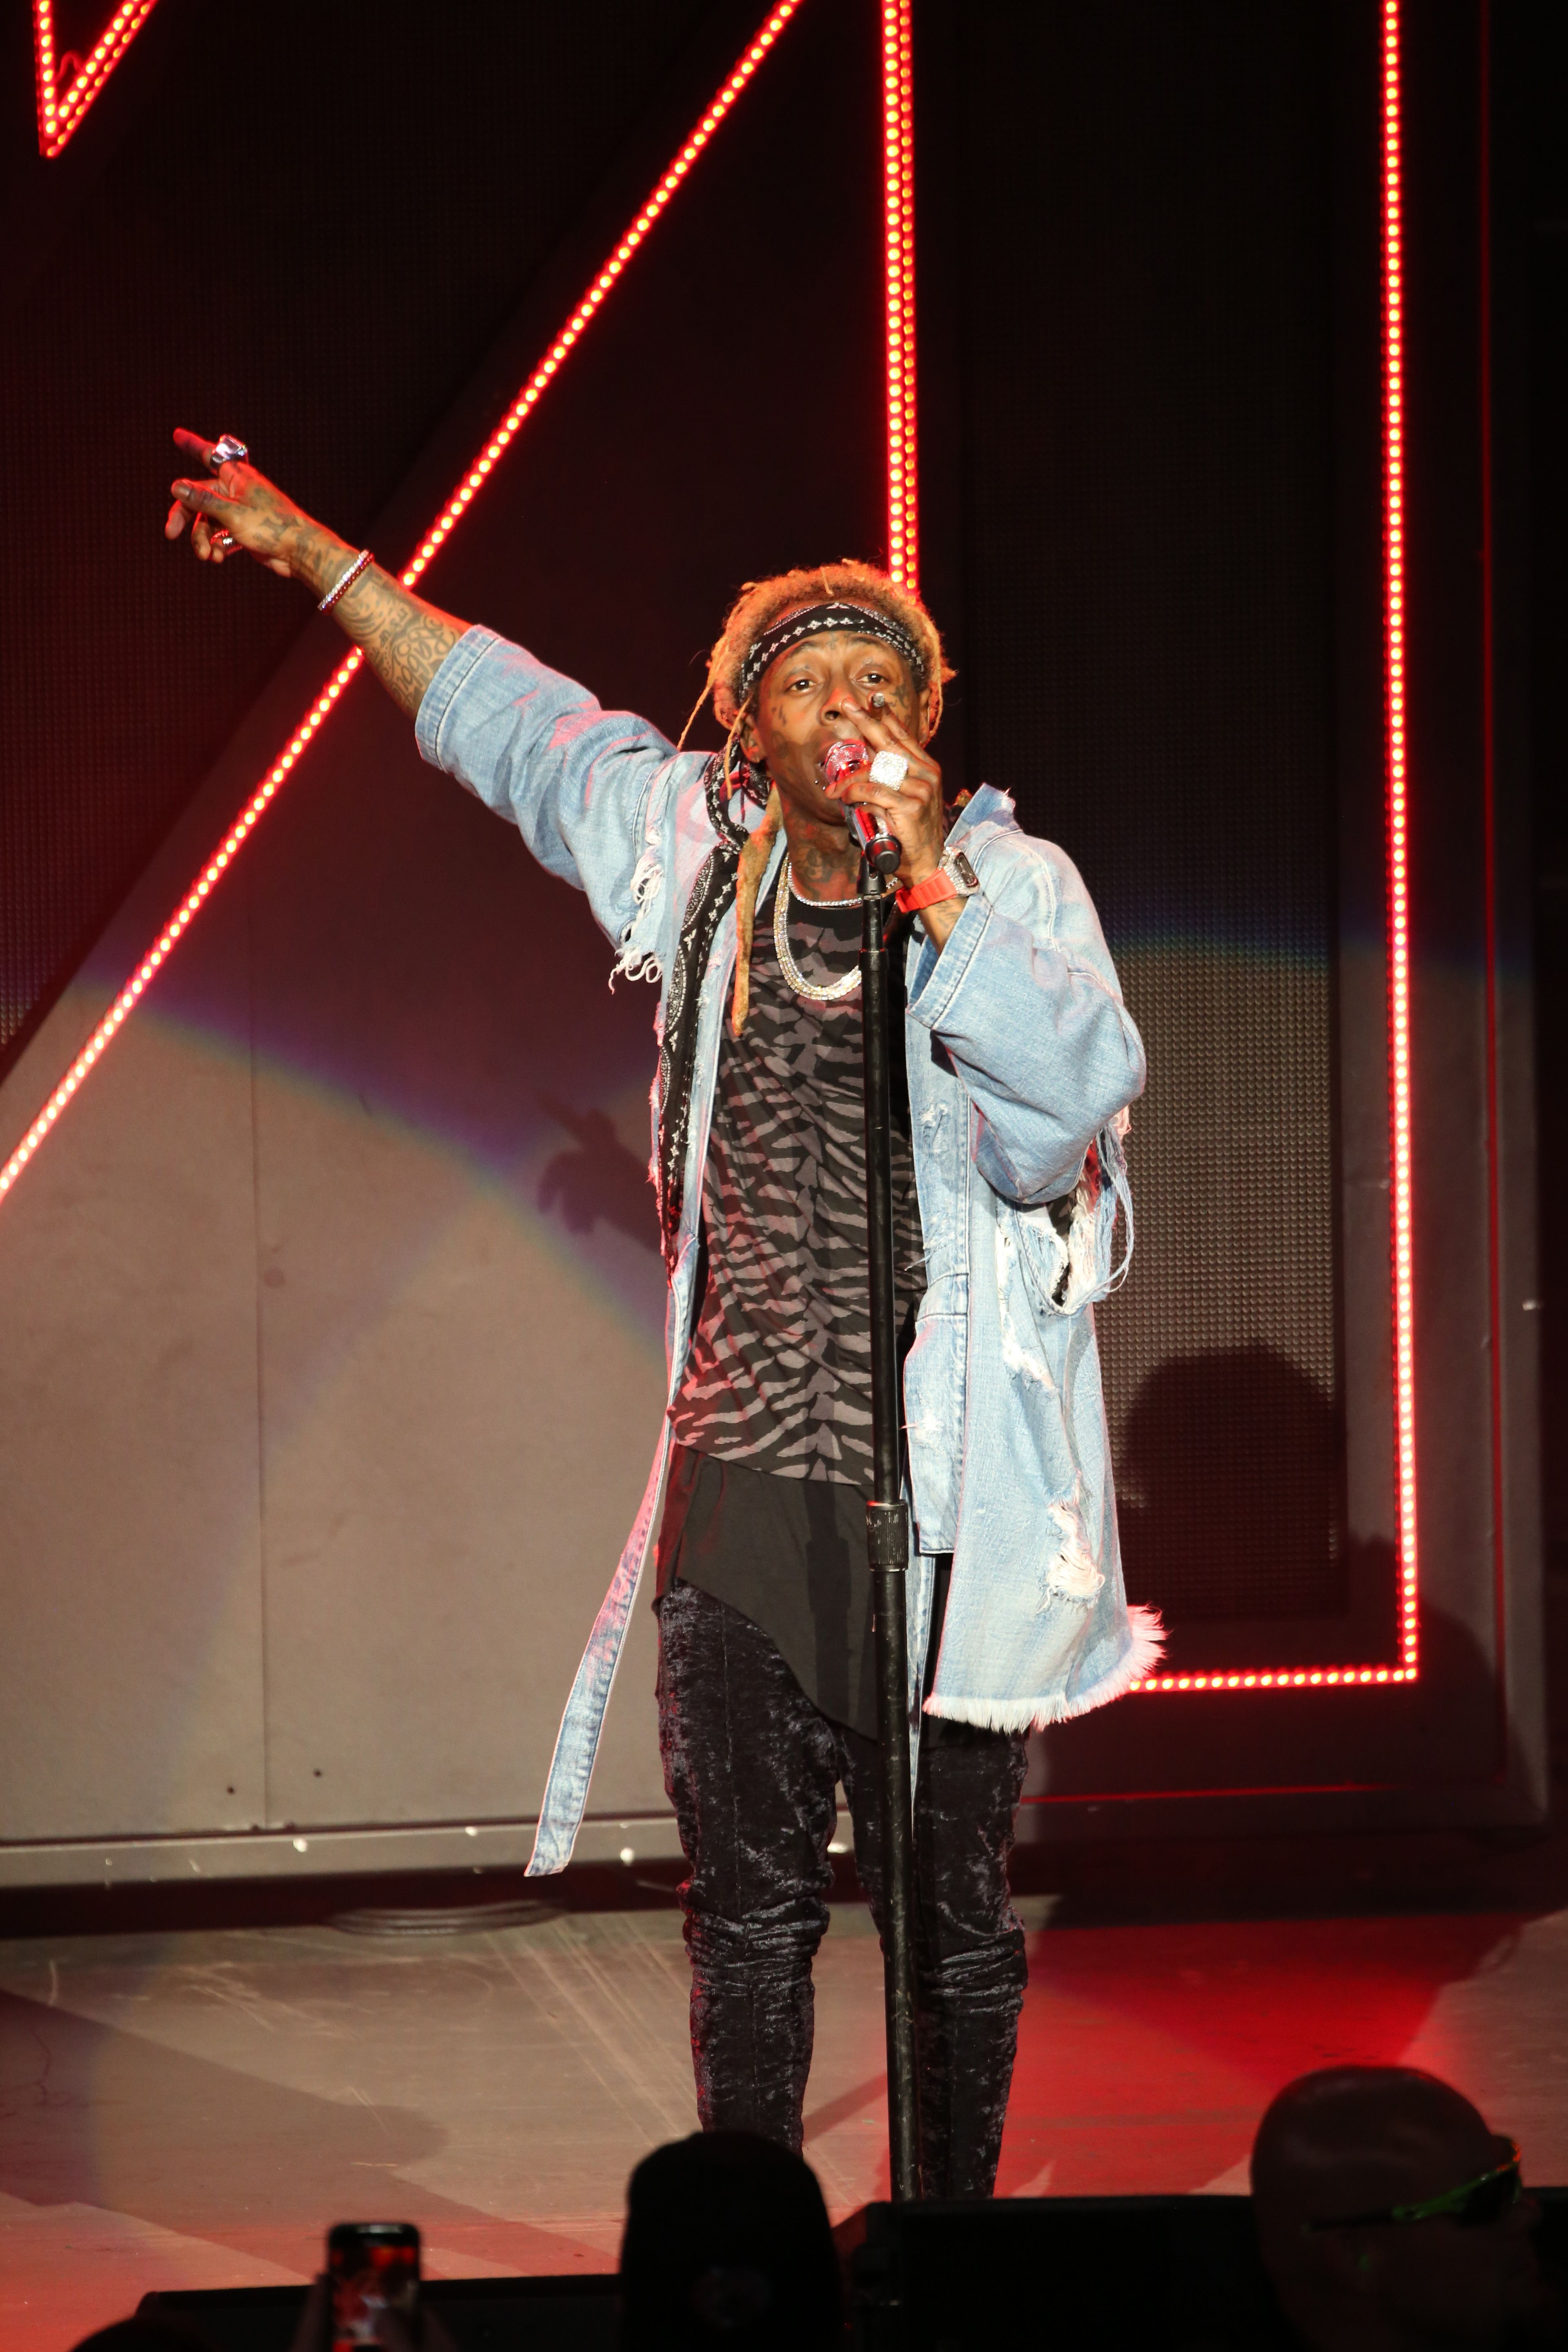 Lil Wayne Quits Blink 20 Tour Video   Lil Wayne Says He Will ...